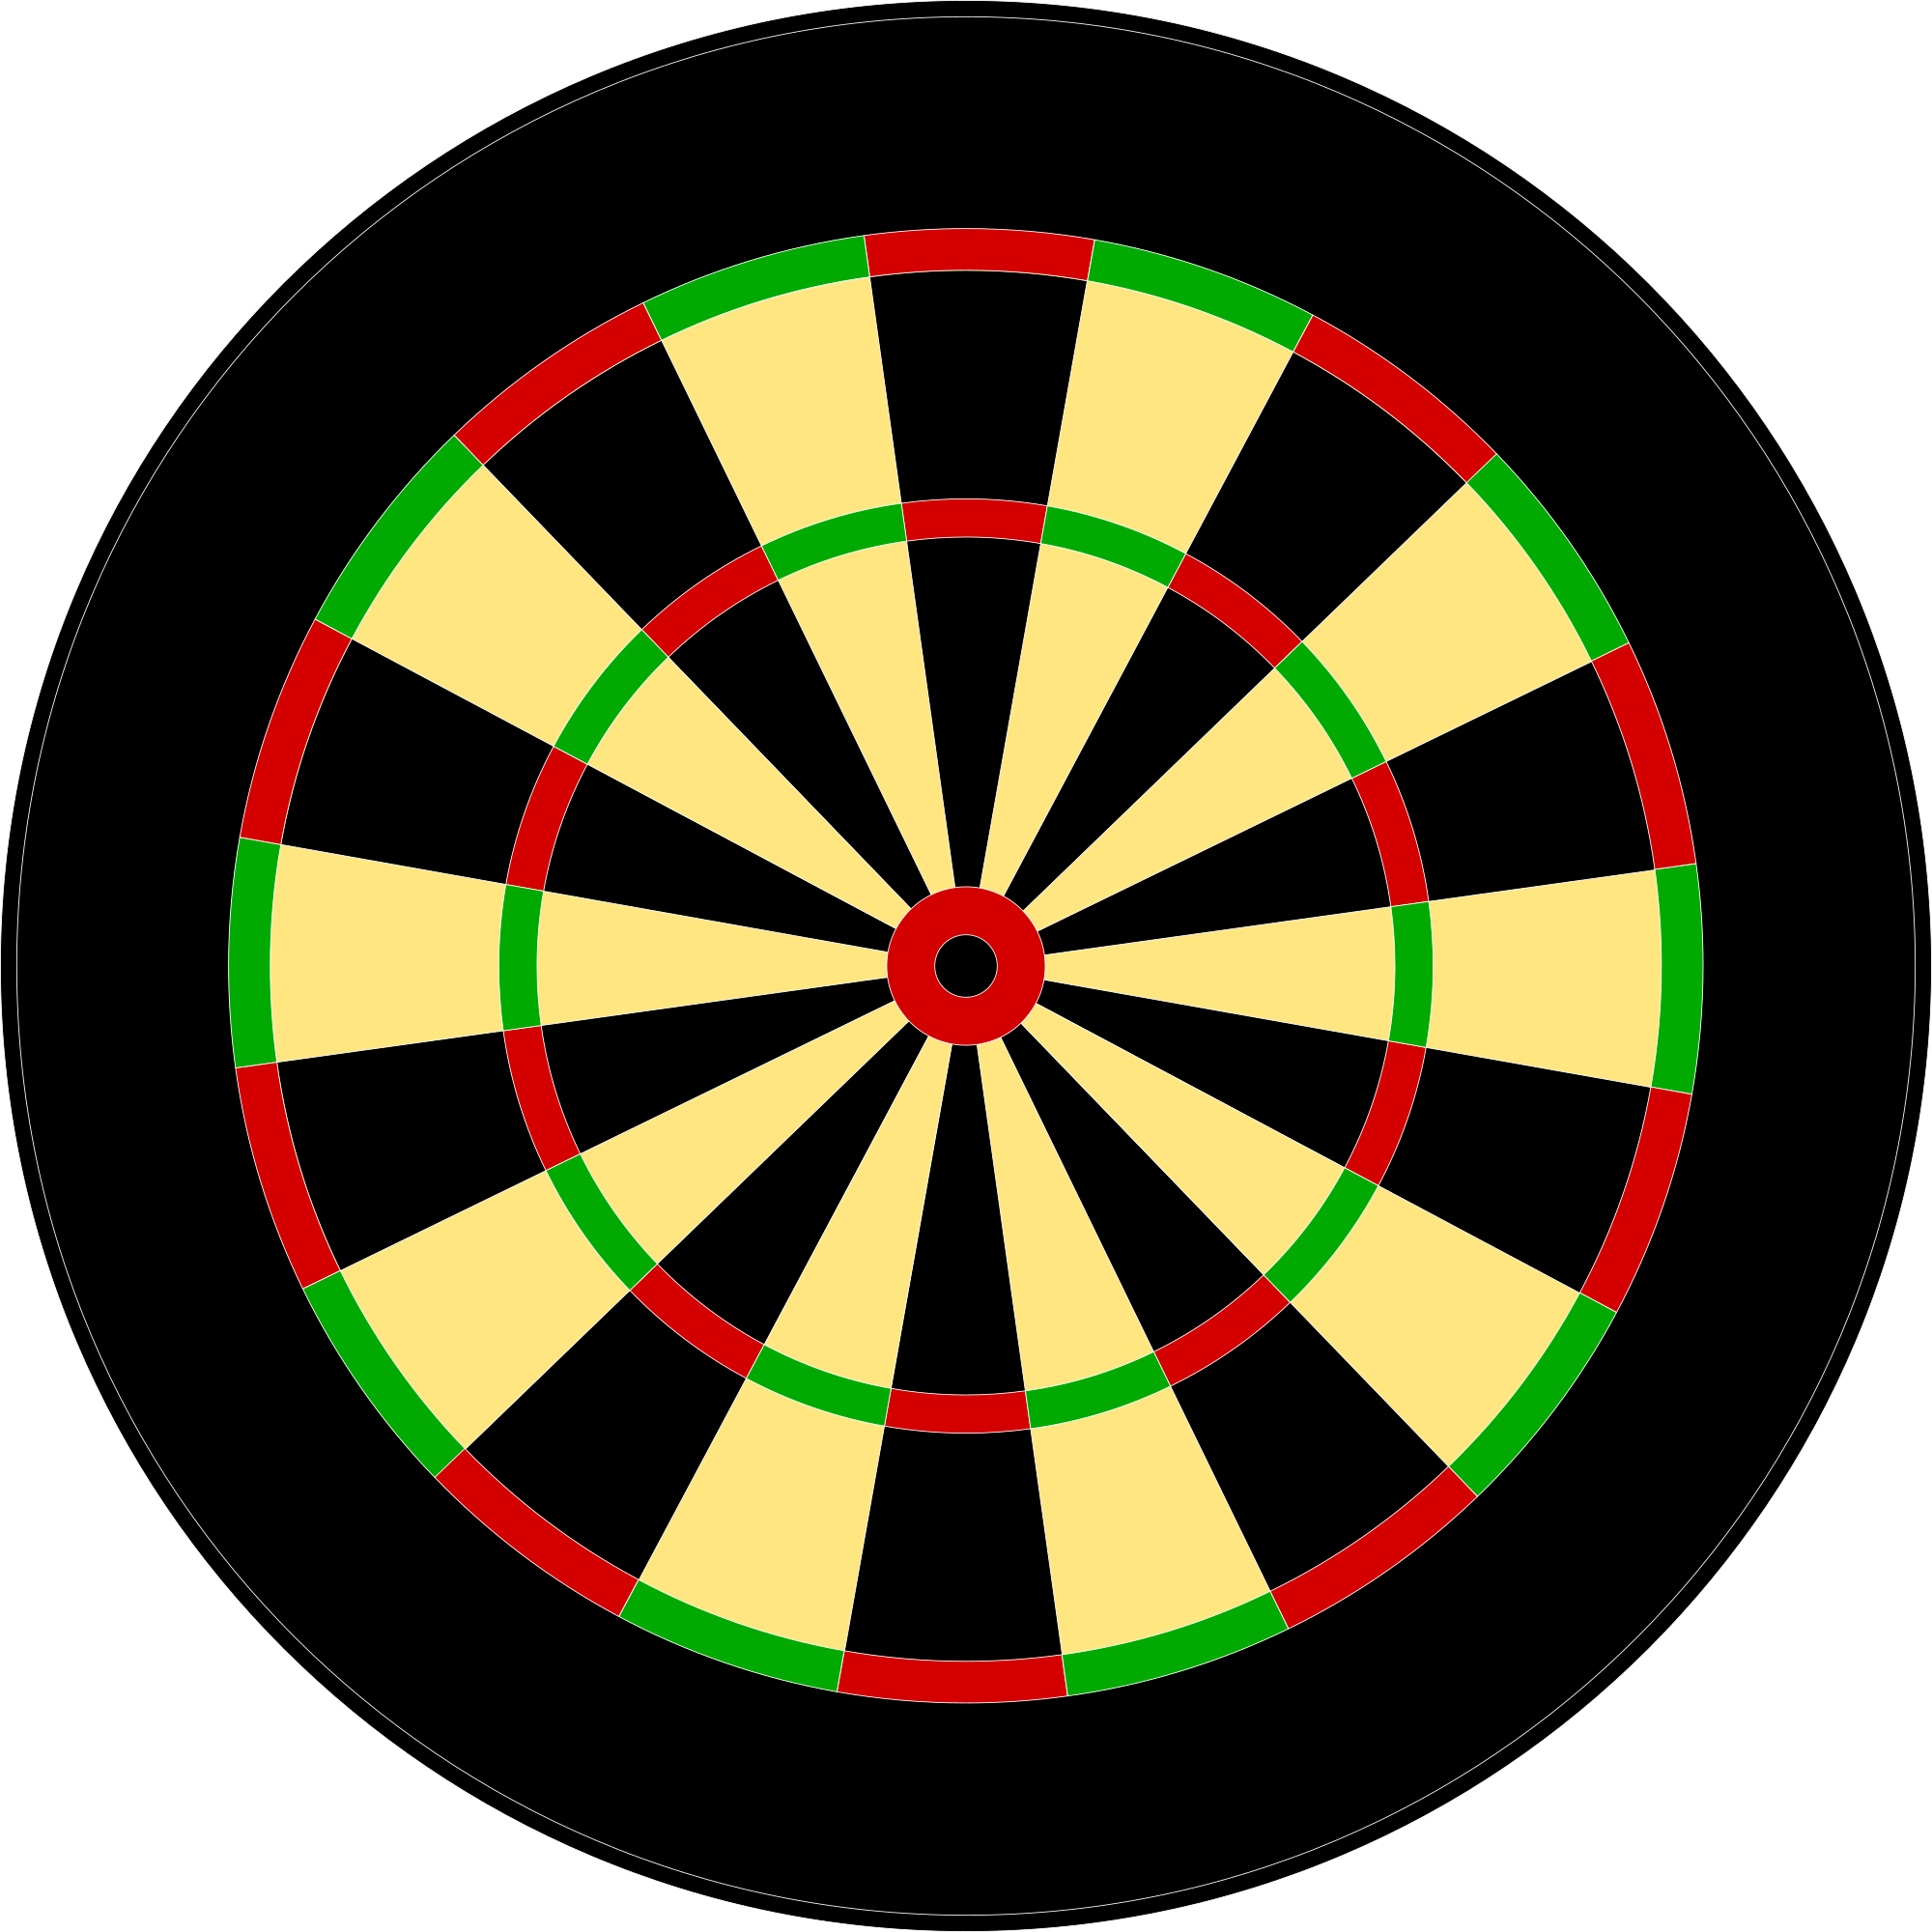 Target svg dart board. File darts wikimedia commons